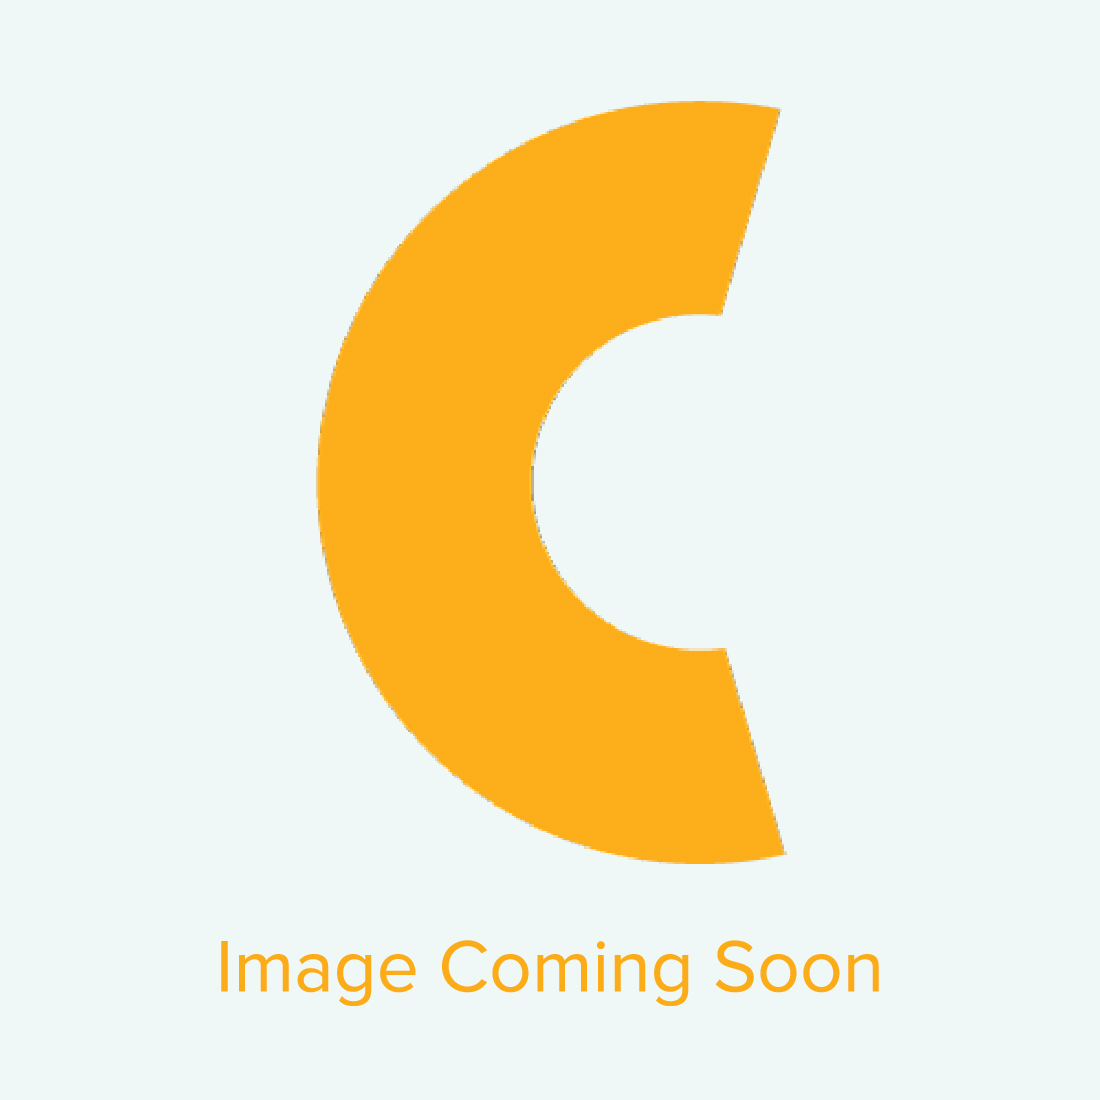 "FOREVER Flex Soft - Laser Heat Transfer Paper - 8.5"" x 11"" - (100 sheets) - Rose Gold - OVERSTOCK"